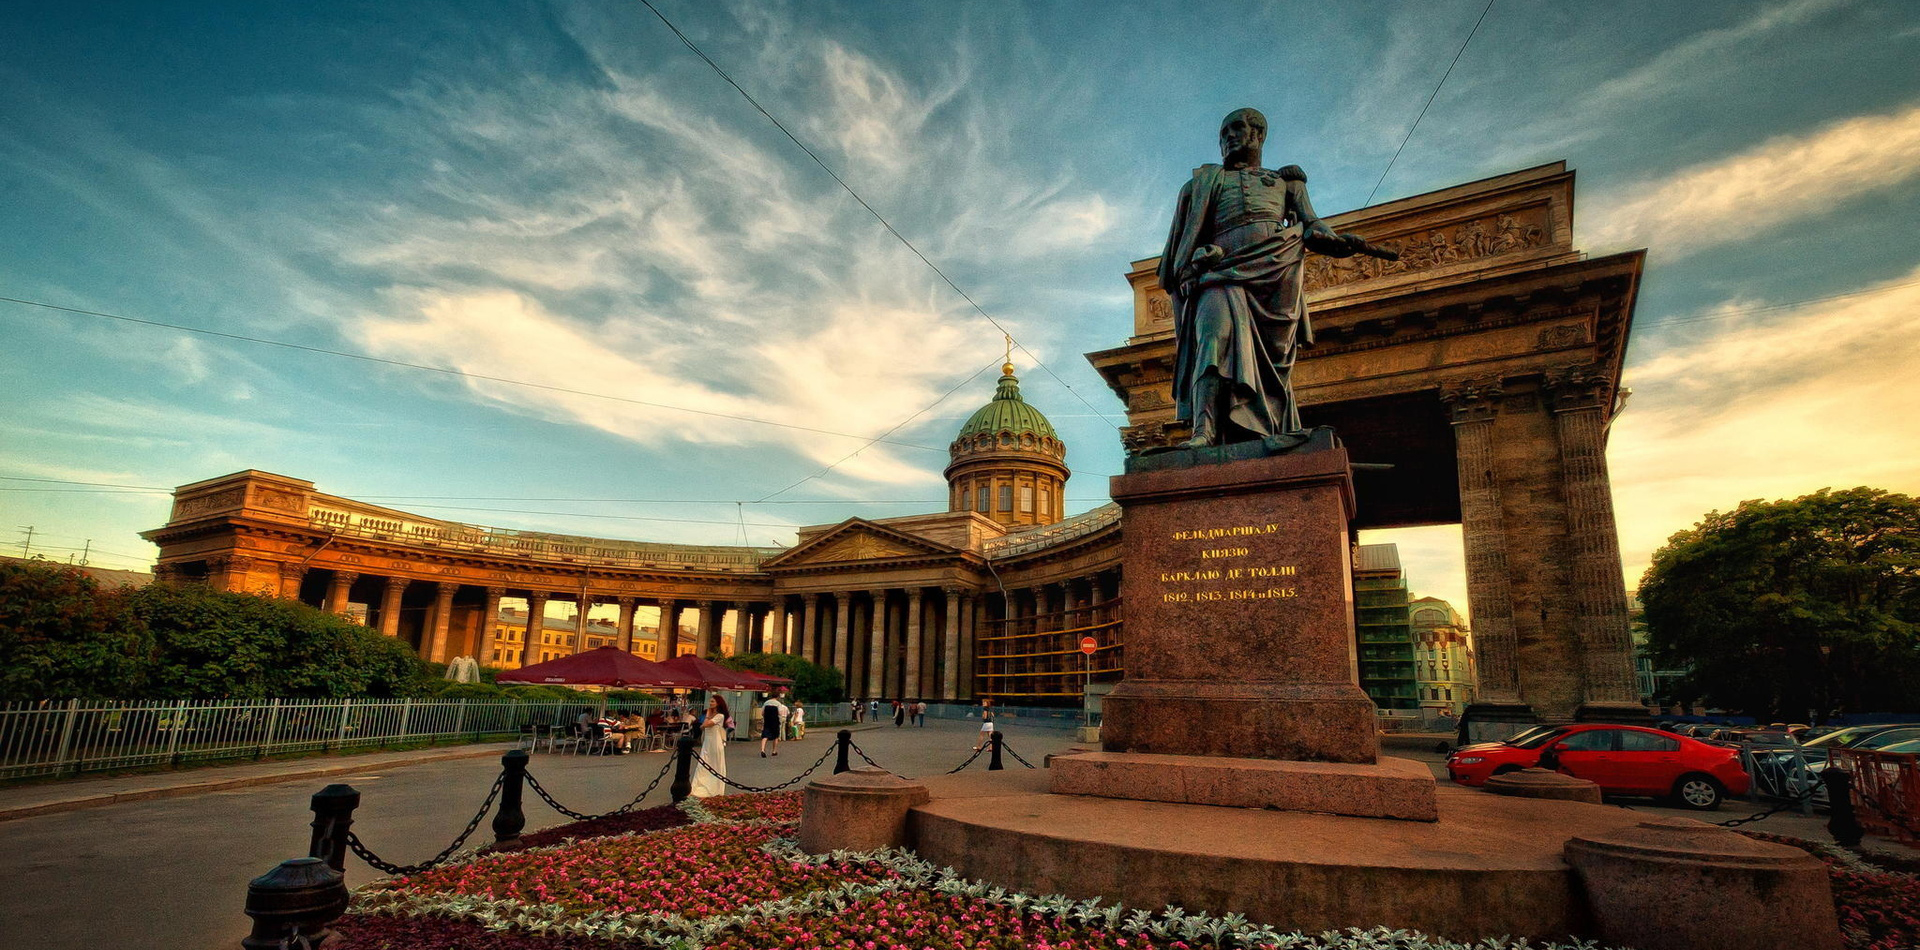 St Petersburg private tour by car - Smart Free tour